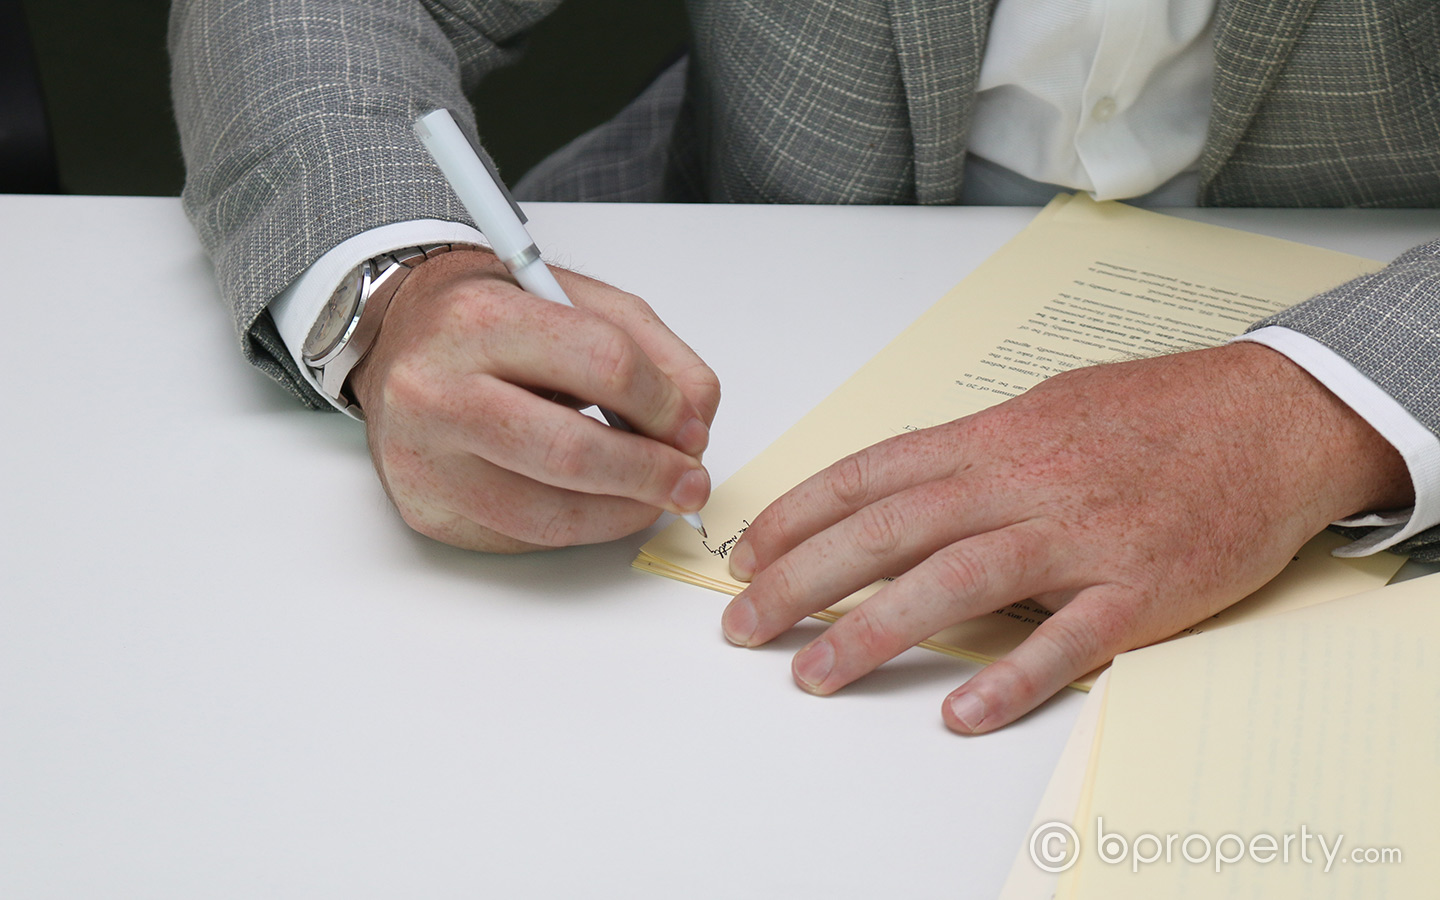 A client signing a property deed